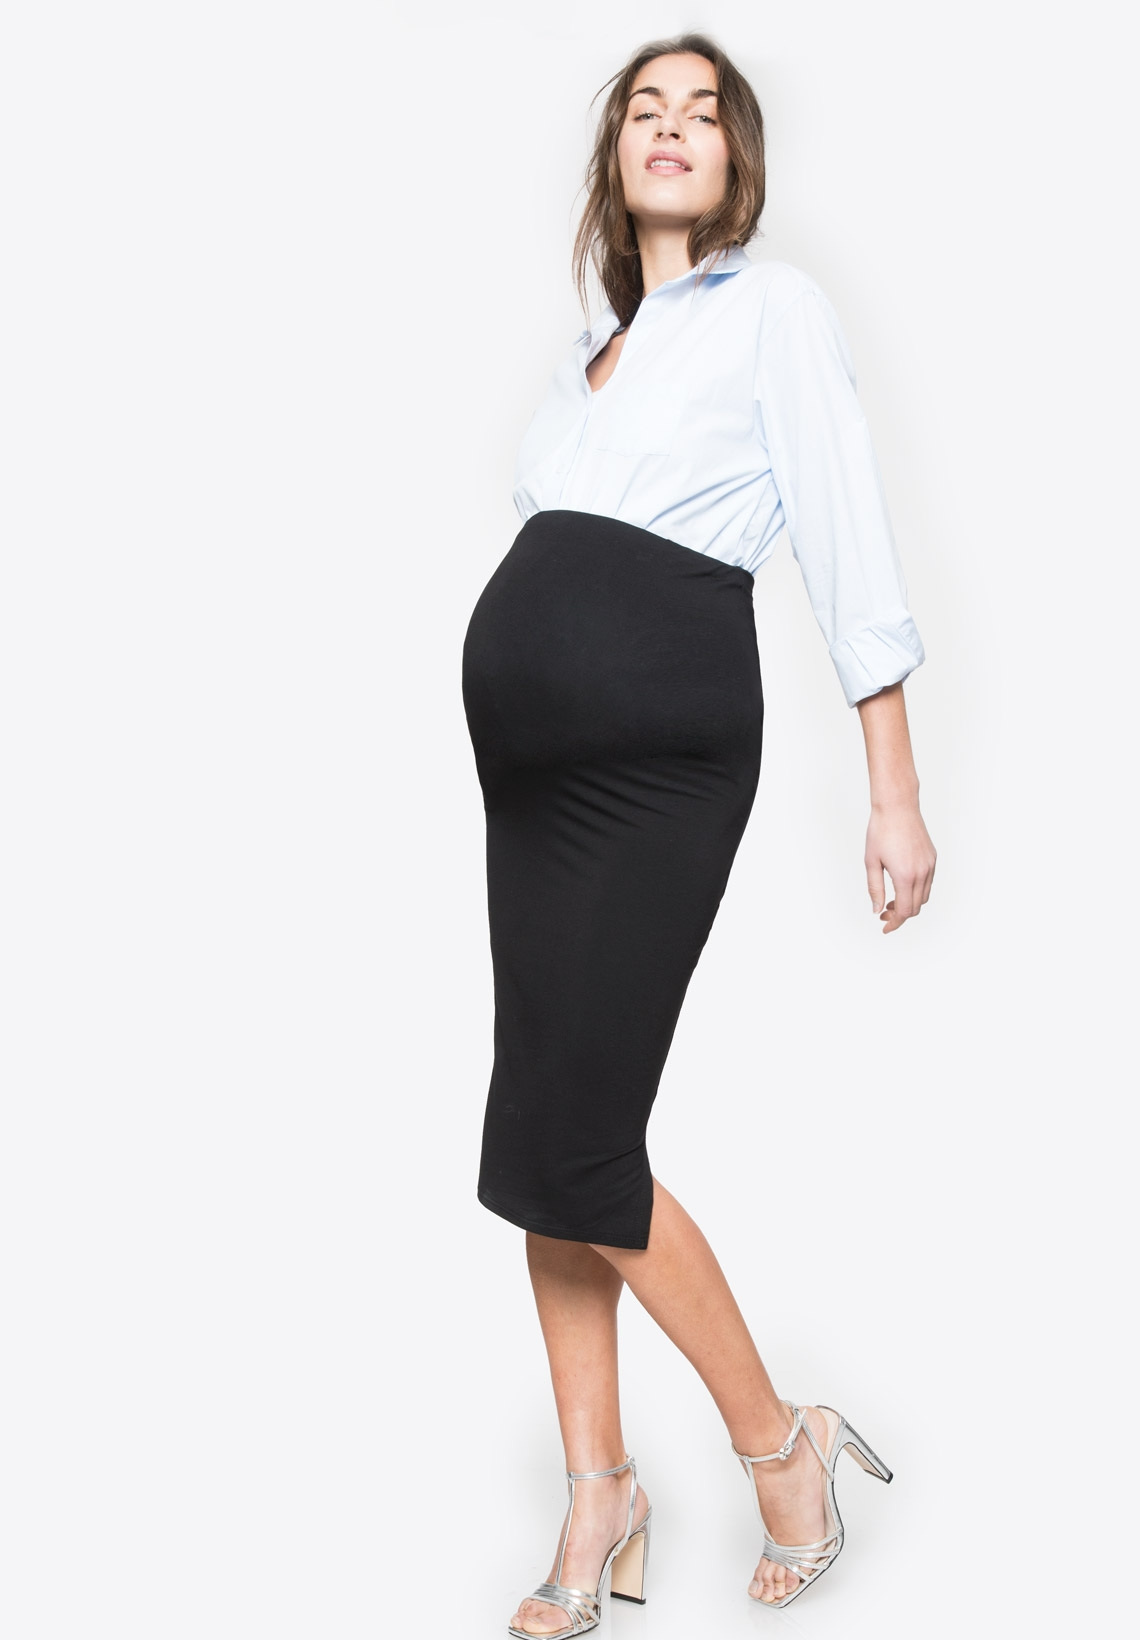 791e7993999606 ... CINDY - Maternity skirt with over belly band - Envie de Fraise ...